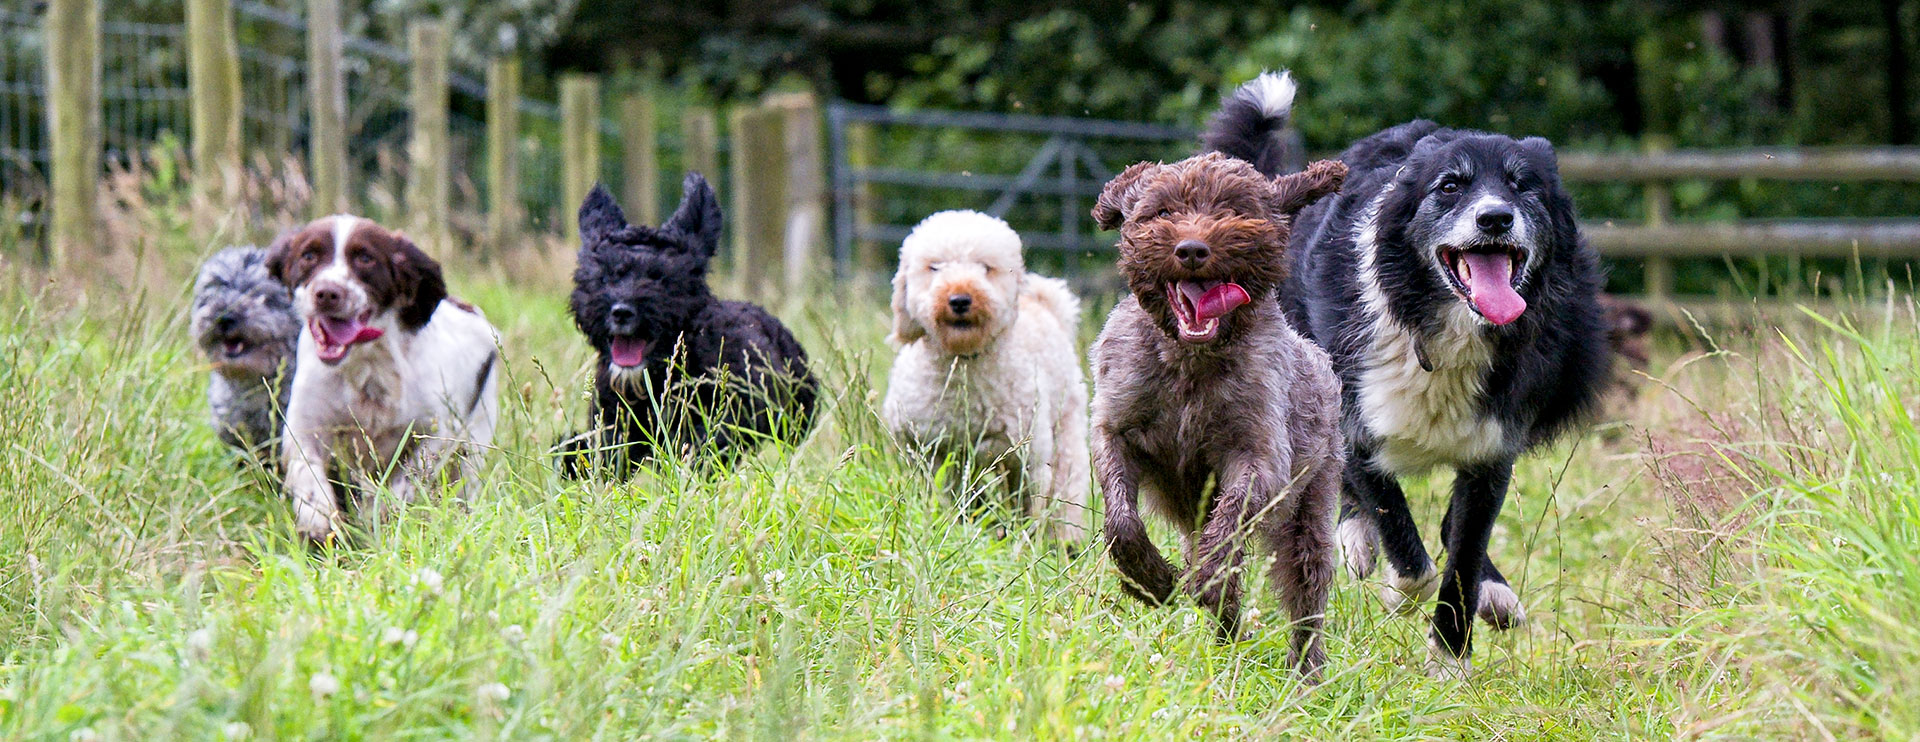 Six happy dogs running in a field